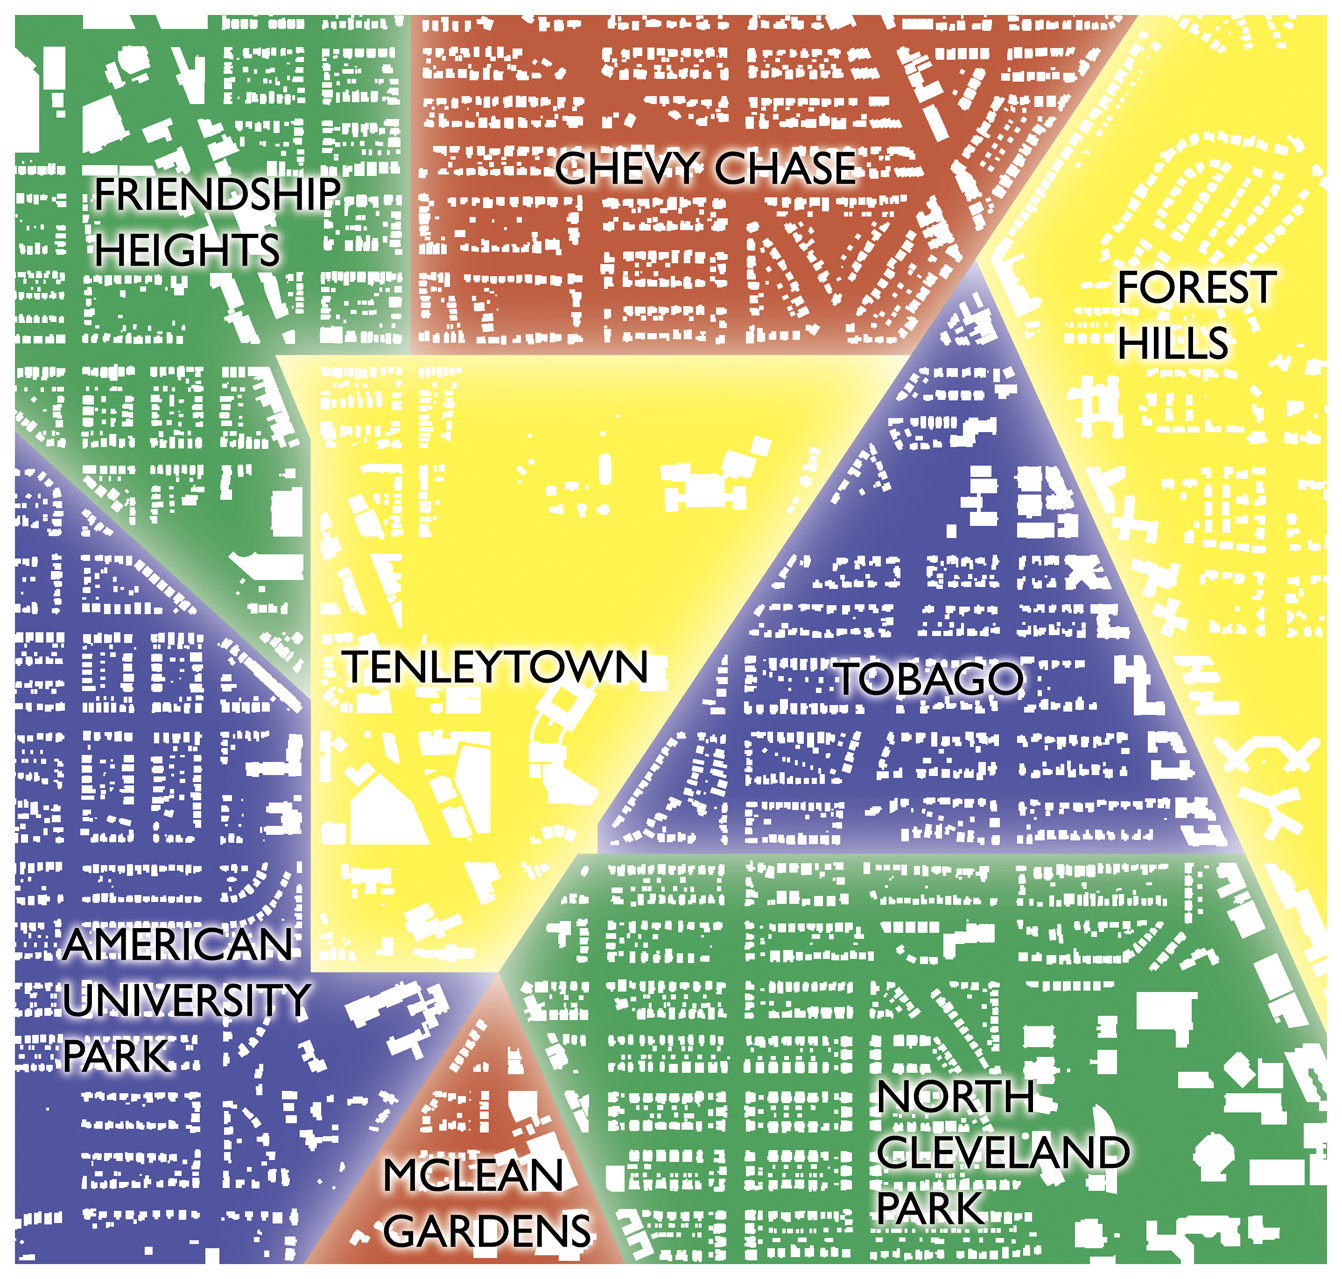 Giving Upper Northwest a bad (neighborhood) name – Greater Greater